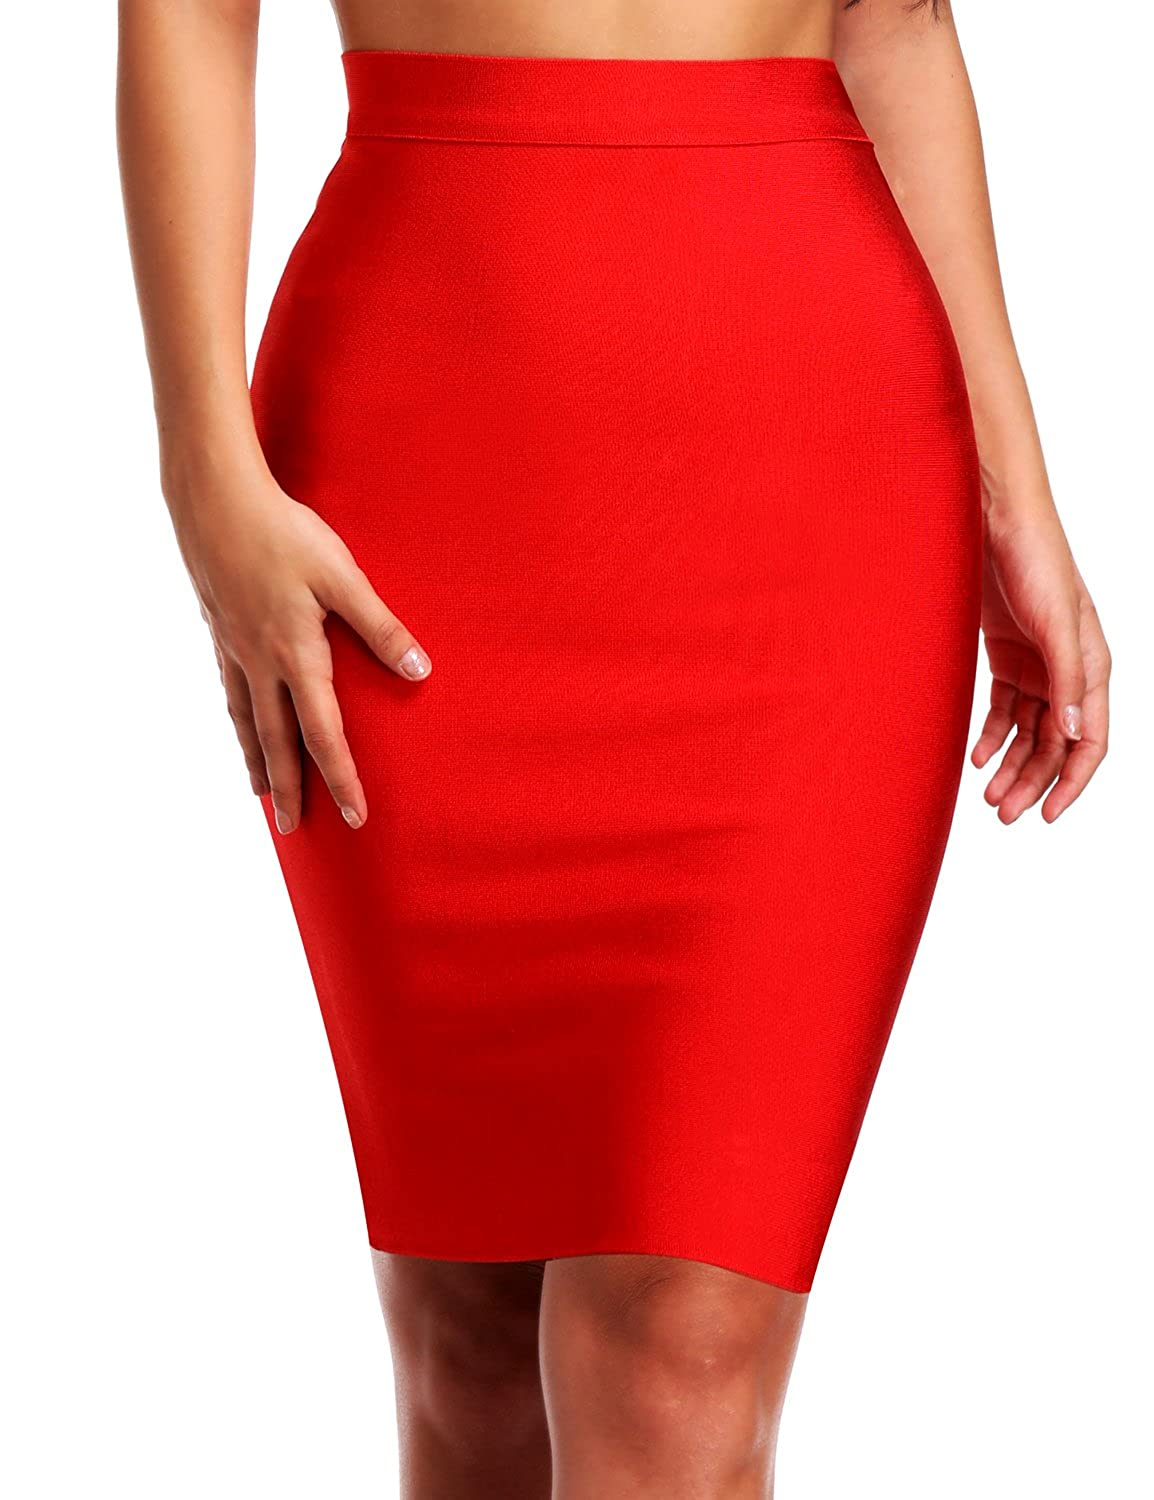 Hego Womens Solid Color Wear to Work Bodycon Bandage Knee-Length Skirt XL H4242